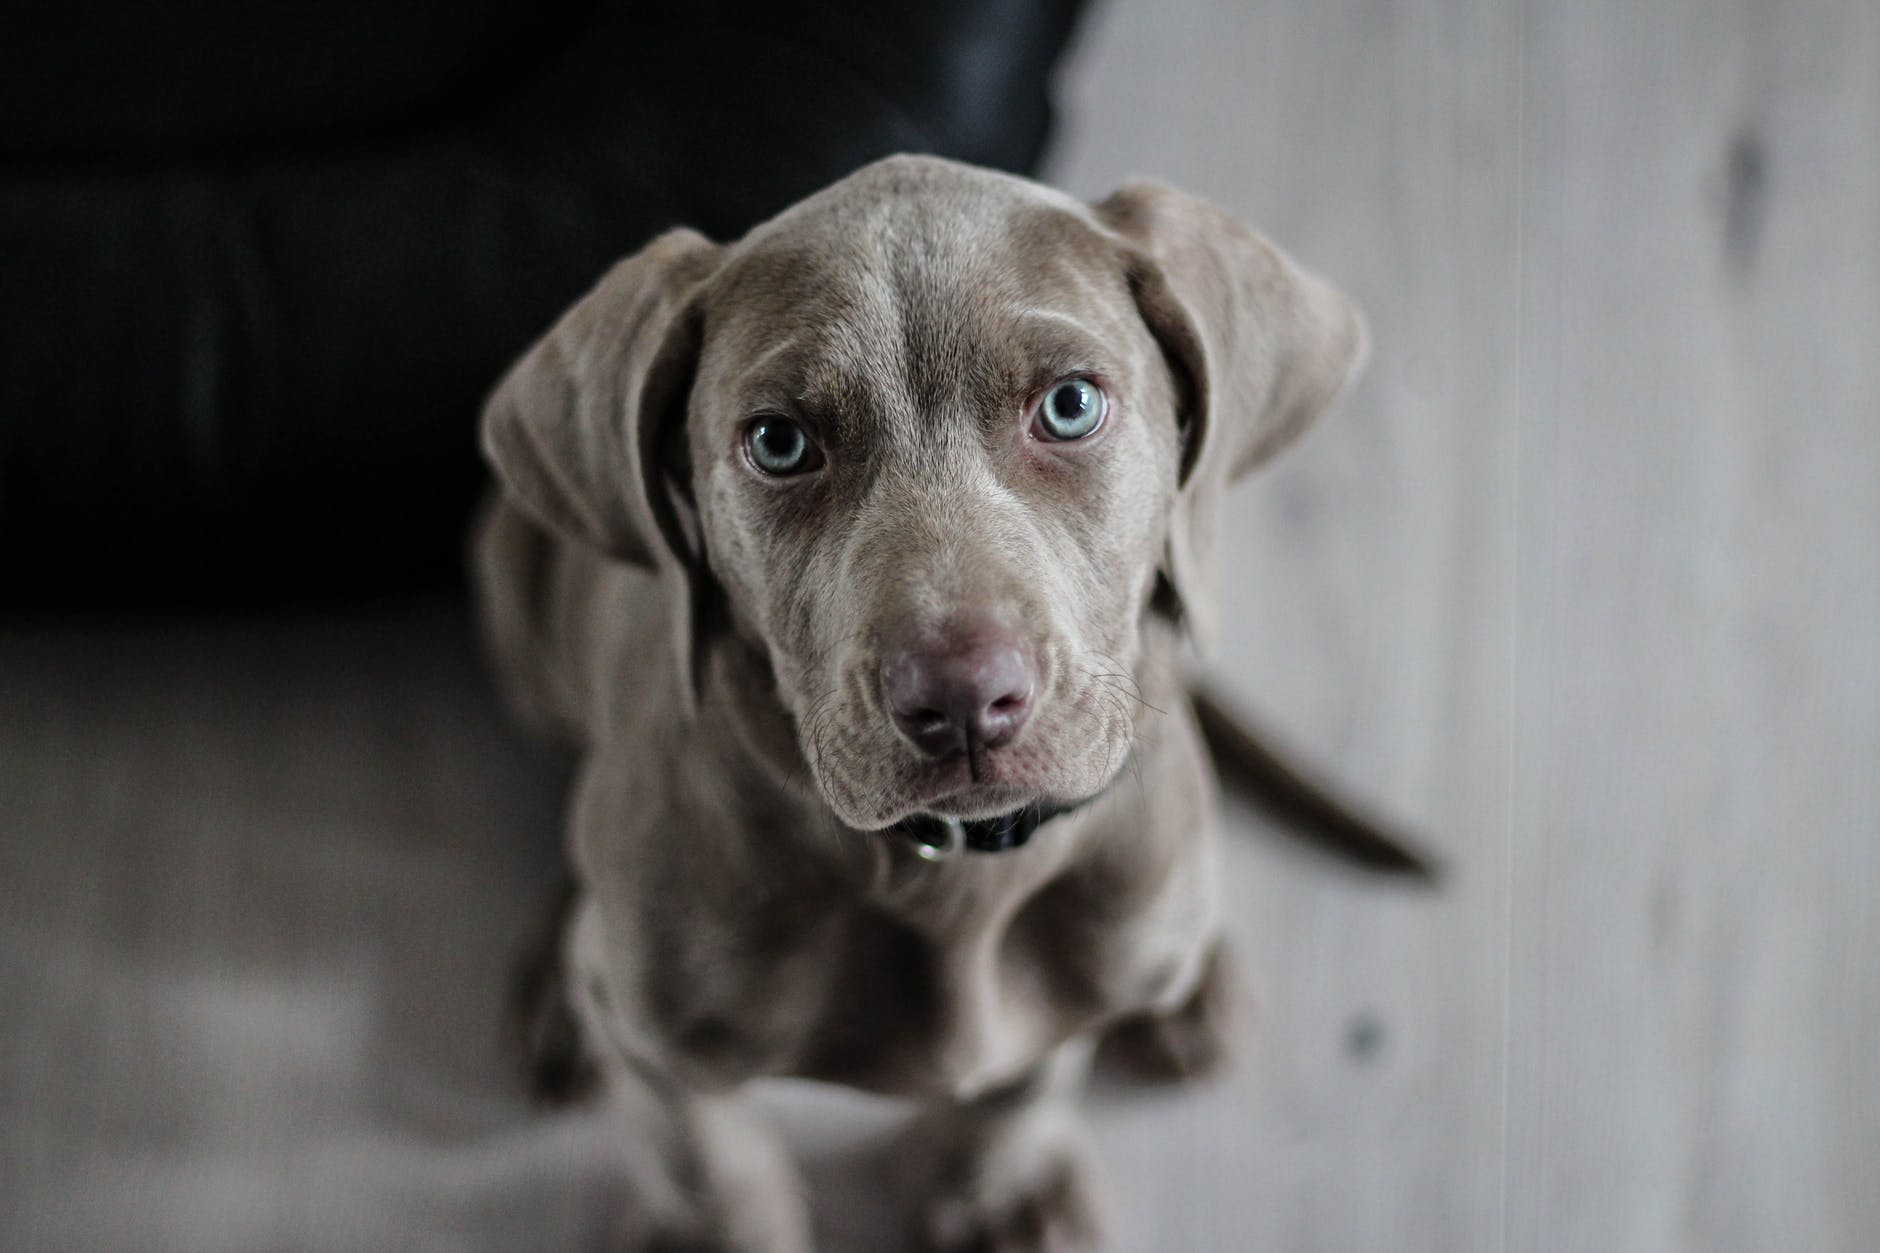 W grey Weimaraner dog sitting on a hard floor and staring up at the camera